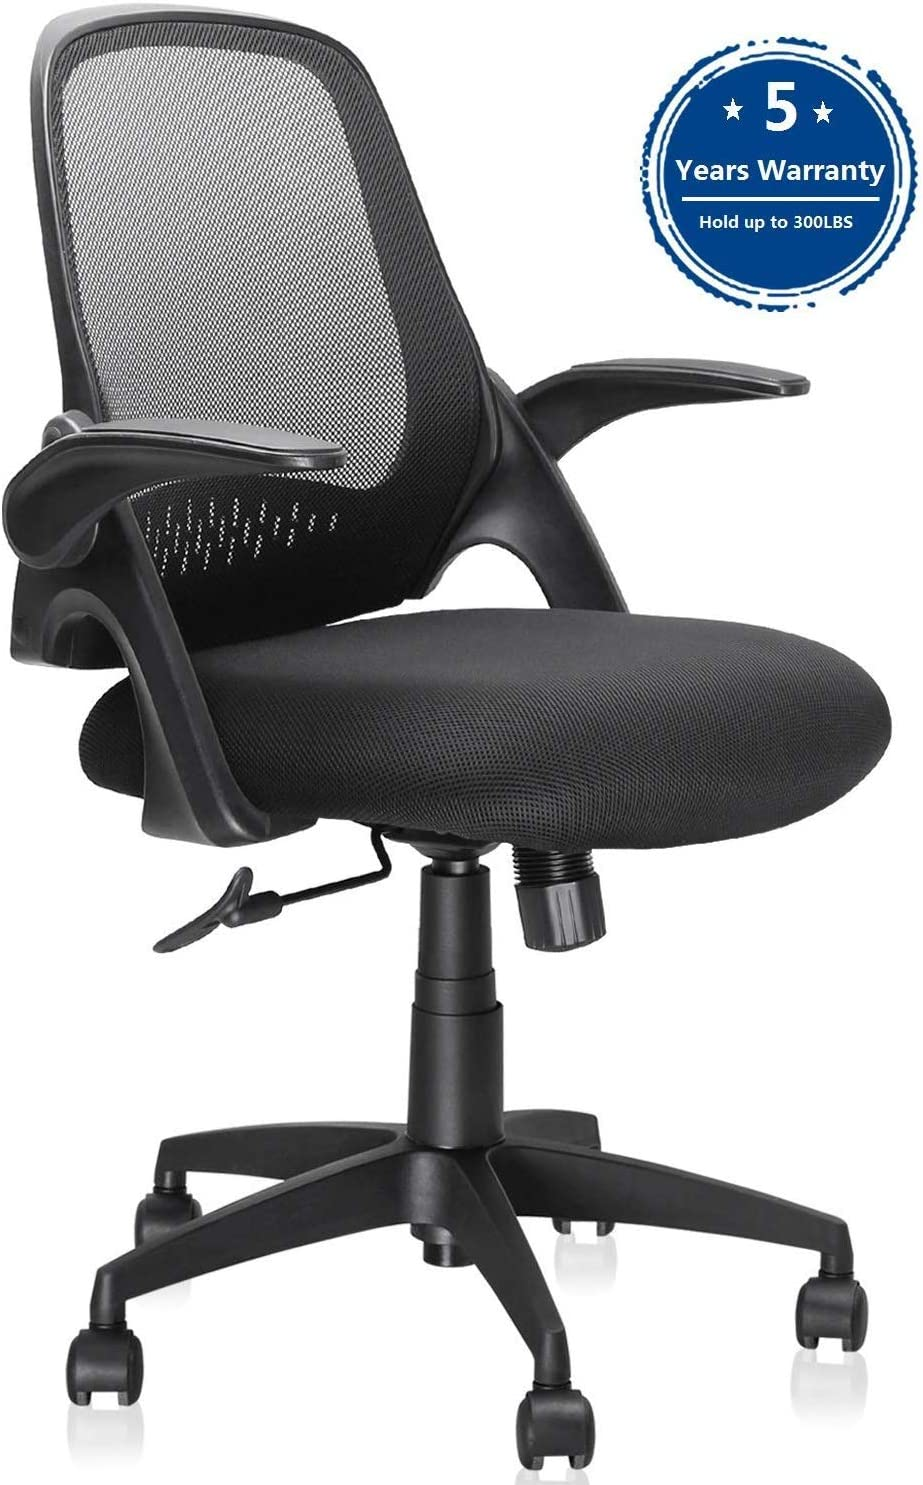 Ergousit Mid-Back Mesh Office Chair, Ergonomic Desk Chairs Swivel Computer Task Chairs with Adjustable Height and Flip-up Armrest – Lumbar Support and Sponge Cushion in Black 1919A-Black